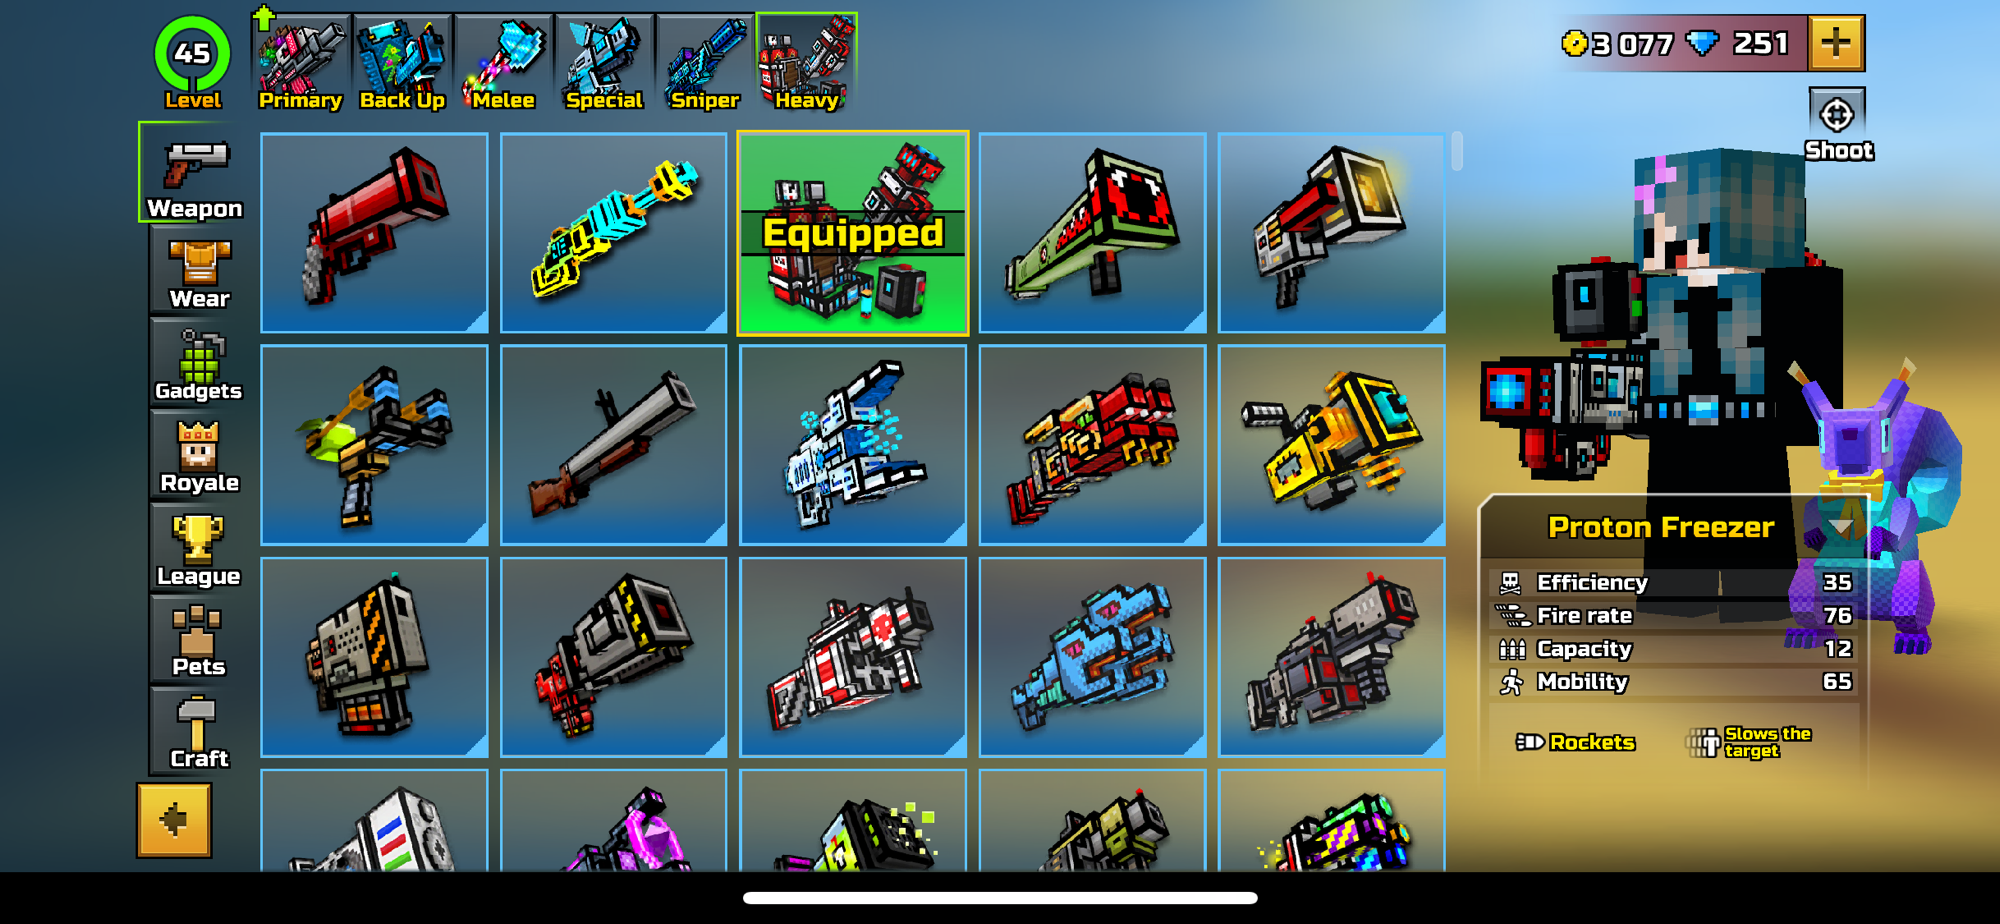 I have the new weapons everyone, add me so we can collect data. My ID: 154523299